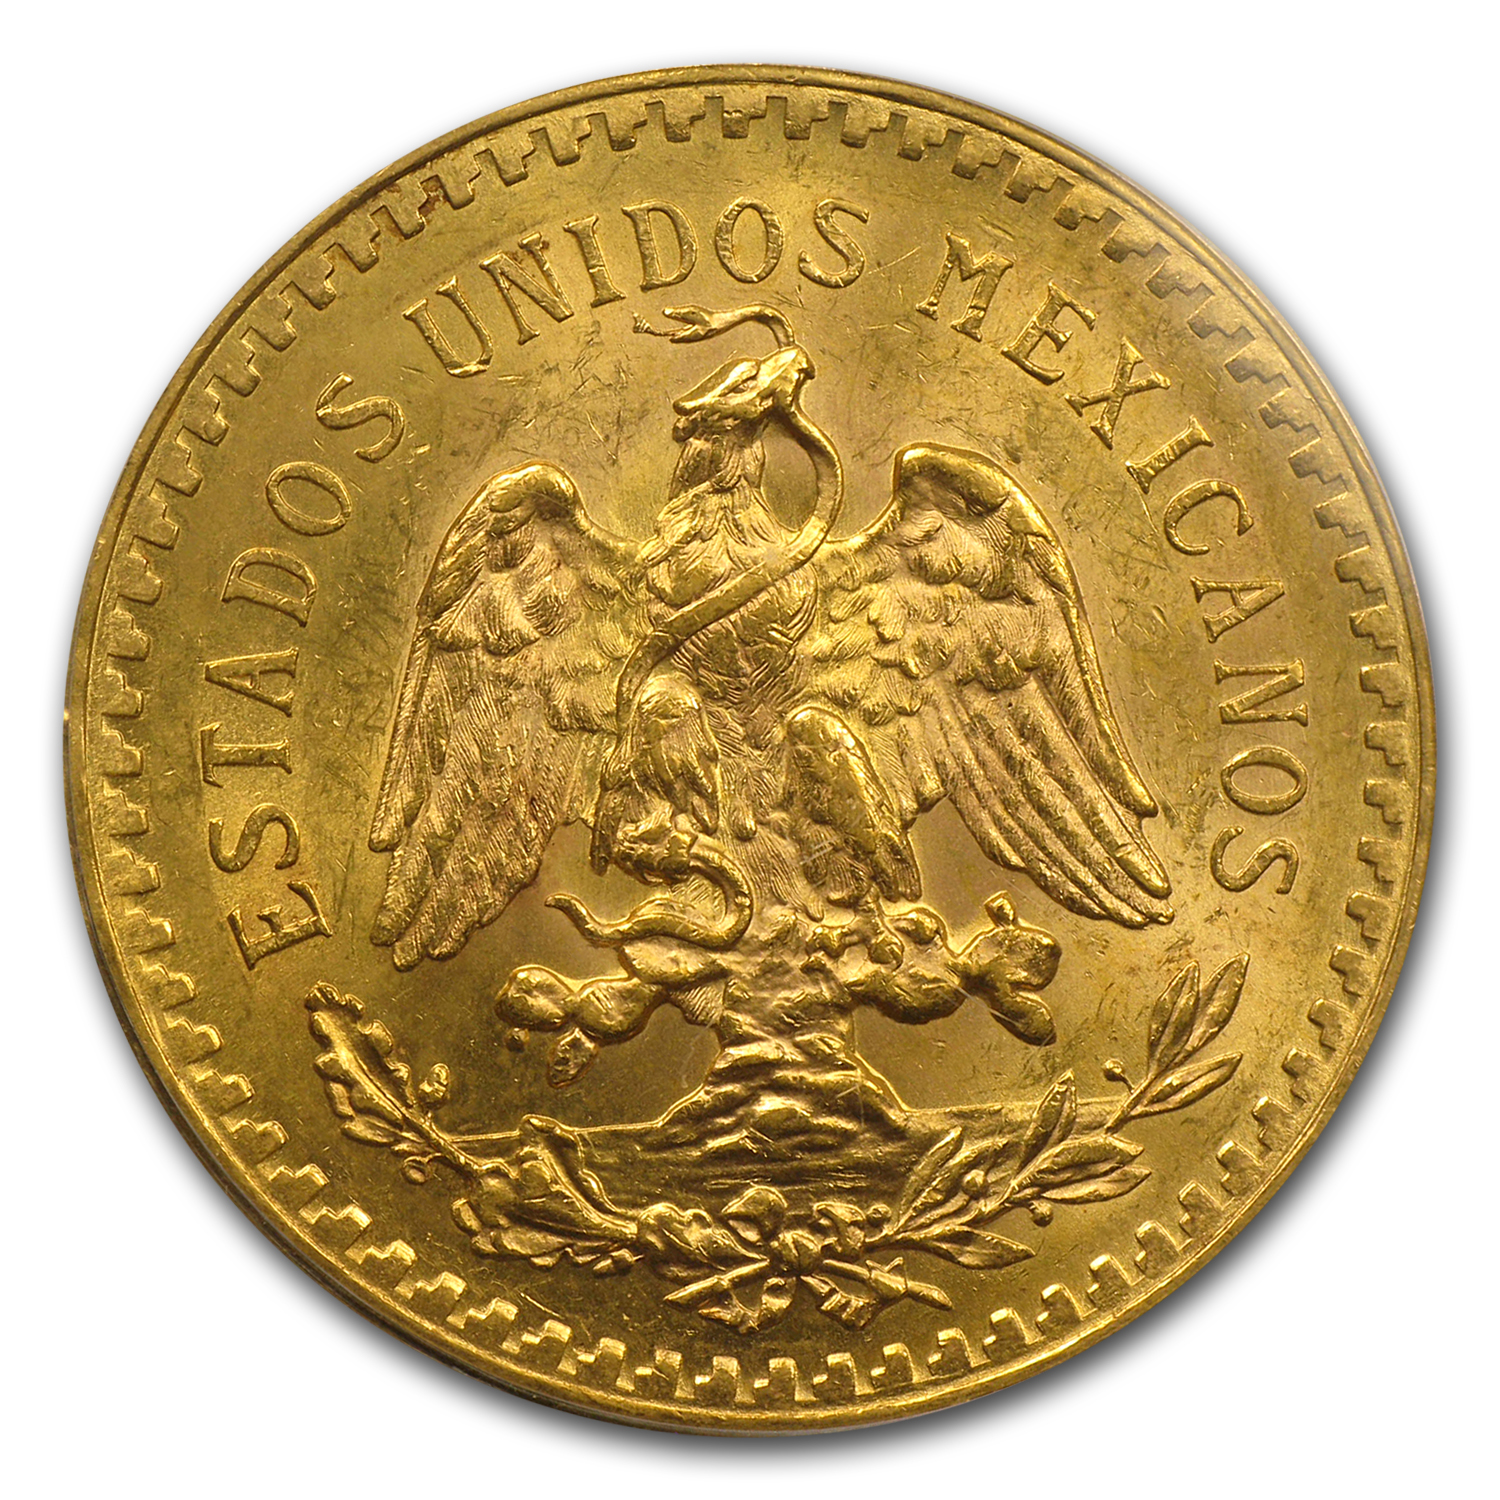 Mexico 1921 50 Pesos Gold Coin - MS-63 PCGS